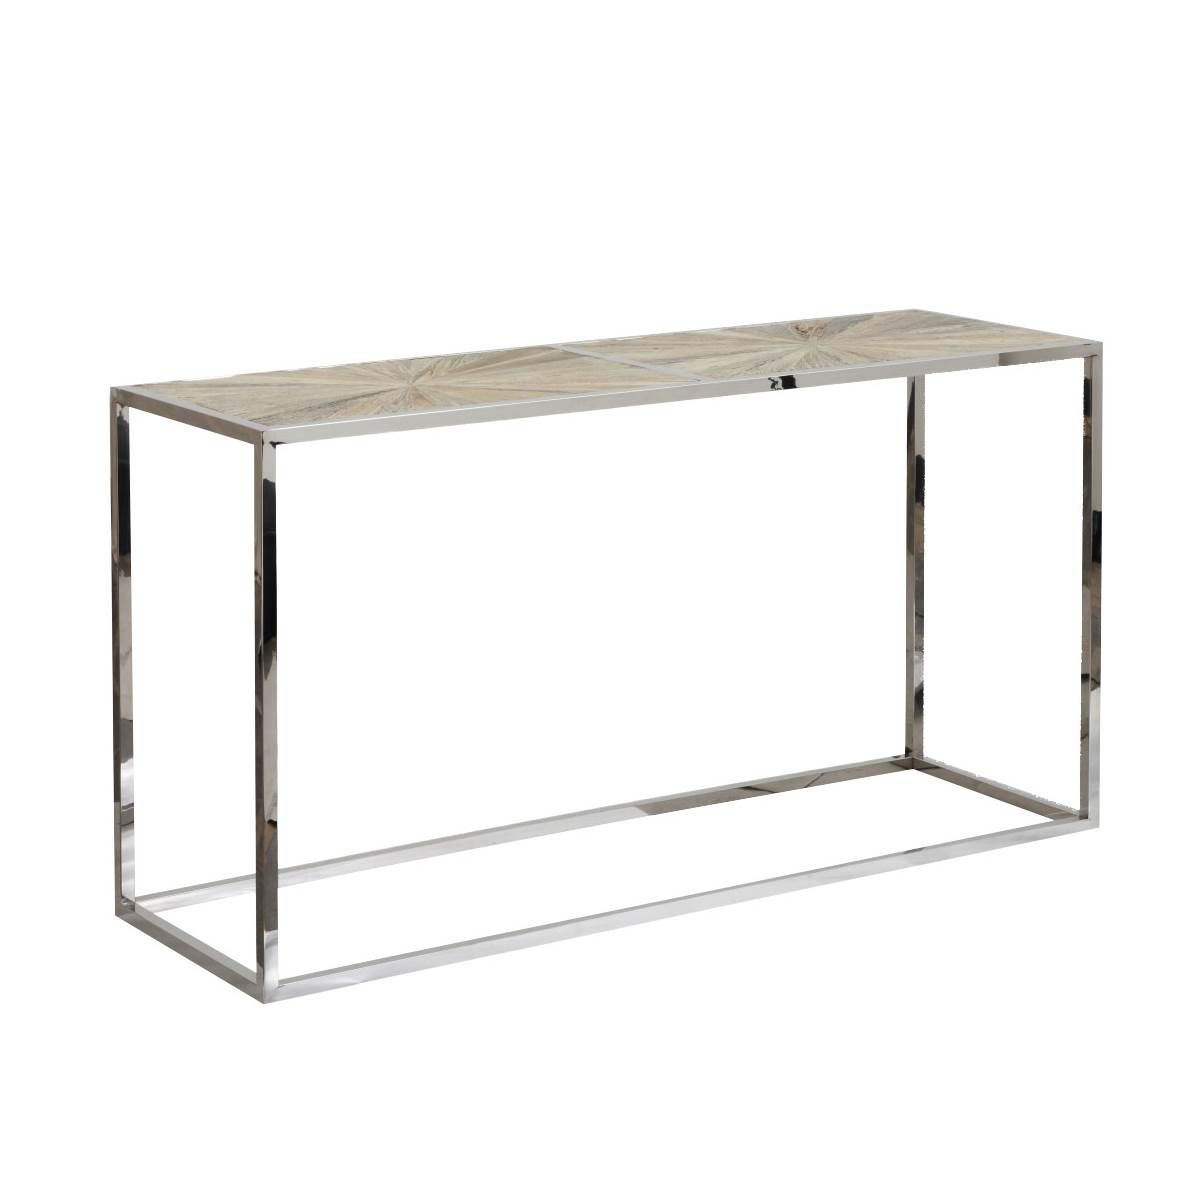 Parquet Console Table | Marshall | Pinterest with Parsons Black Marble Top & Stainless Steel Base 48X16 Console Tables (Image 23 of 30)